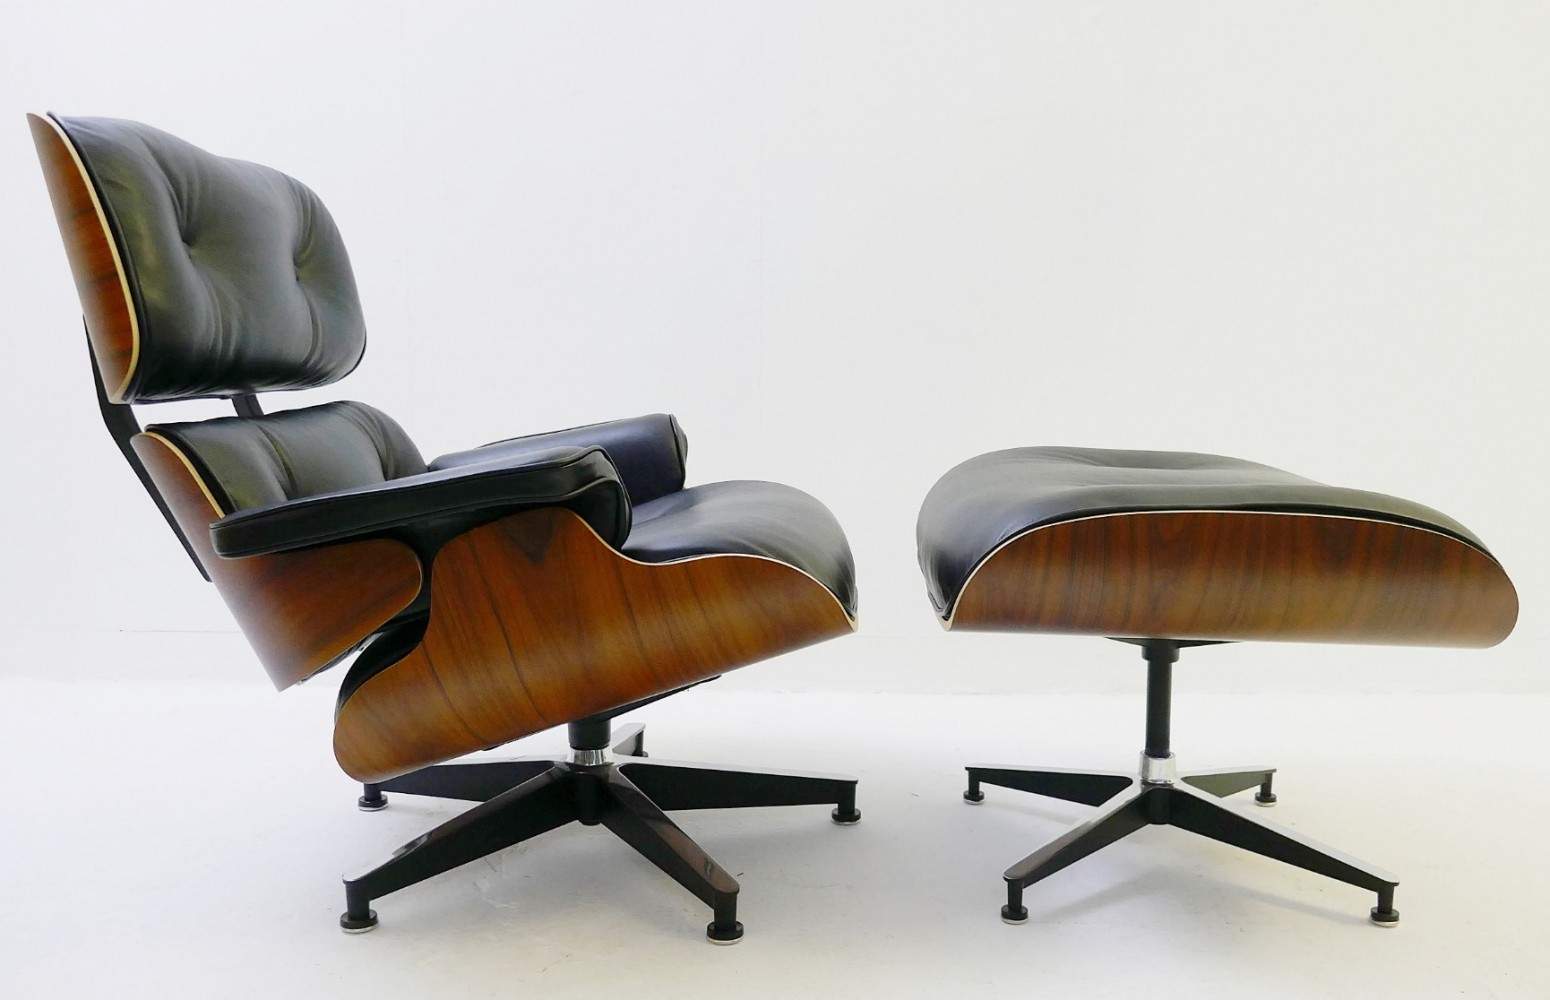 Lounge Chair & Ottoman By Charles & Ray Eames For Herman Miller